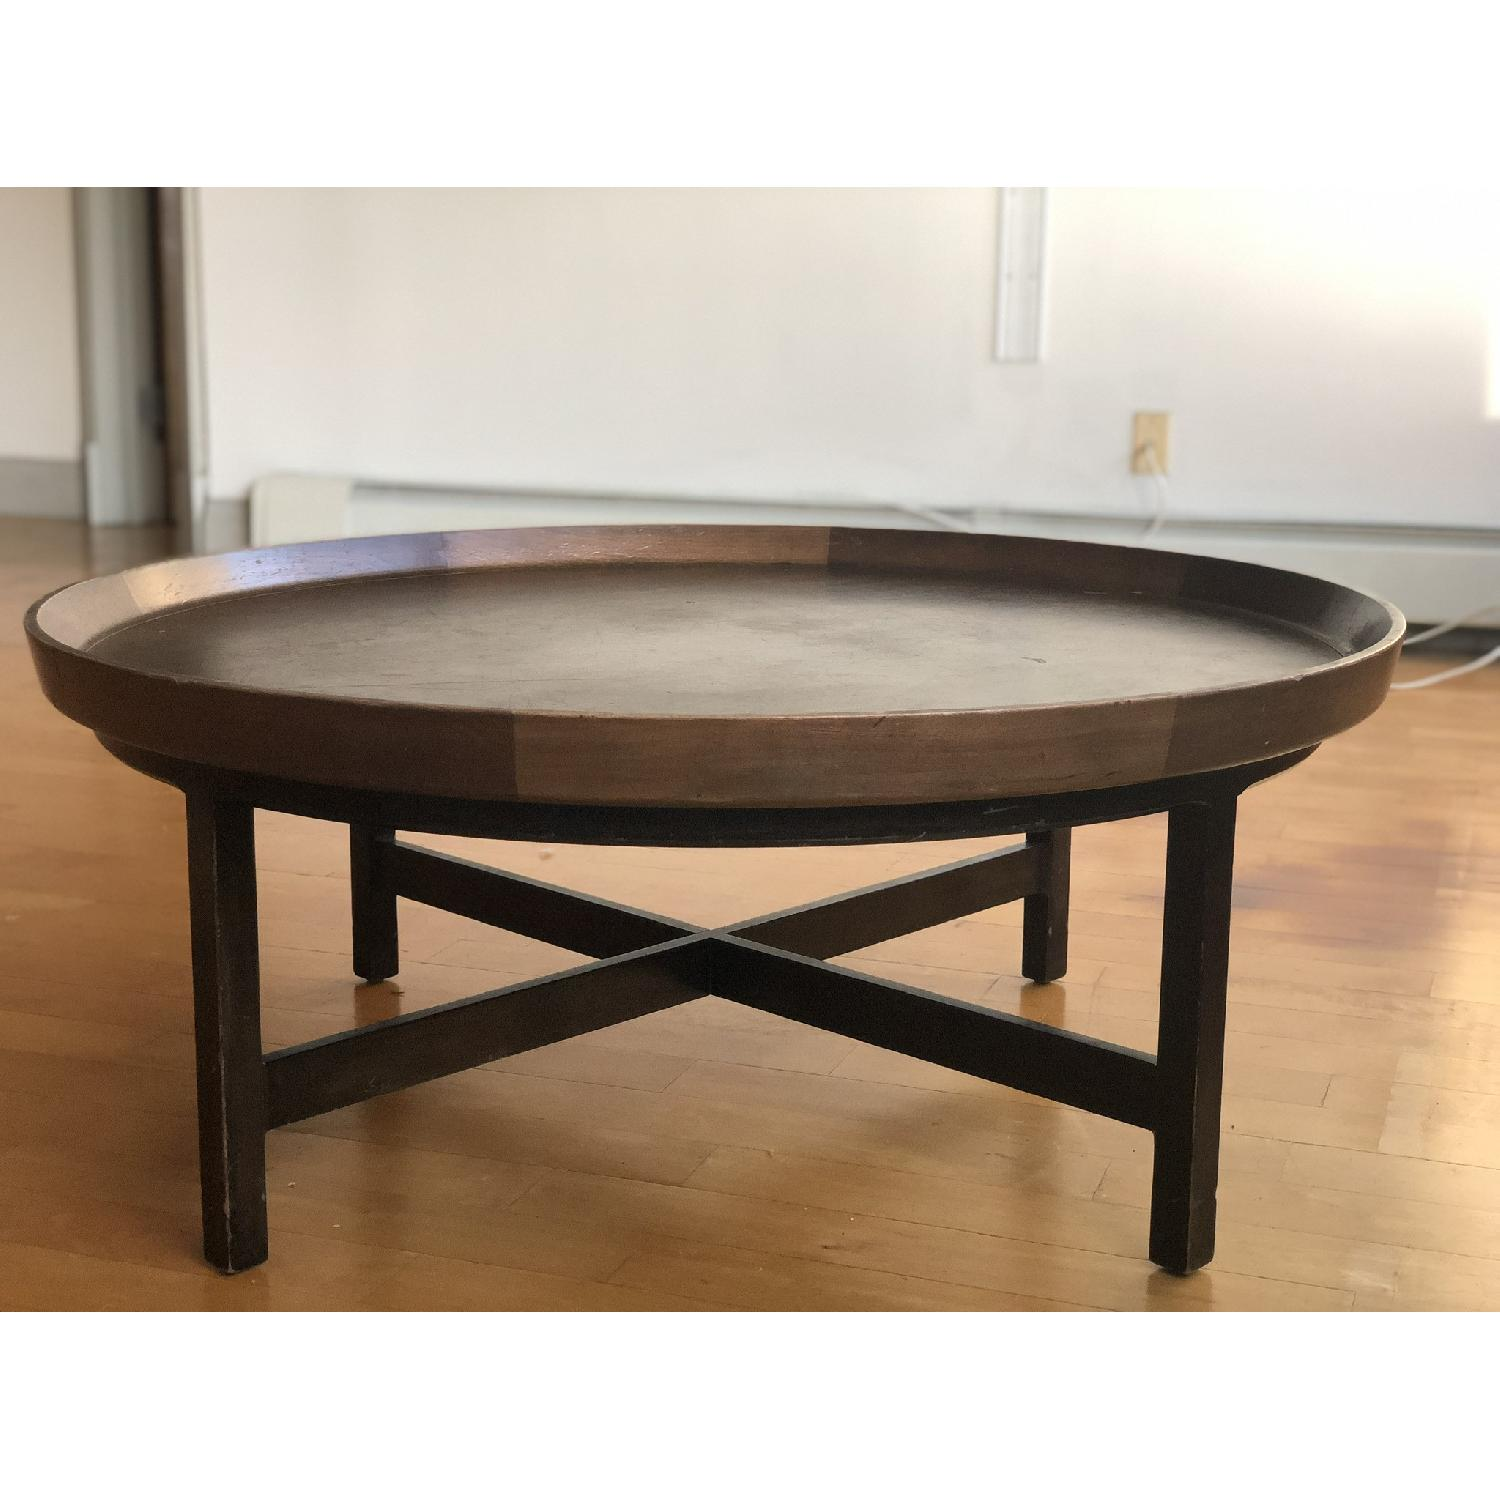 Antique Solid Wood Round Coffee Table - image-1